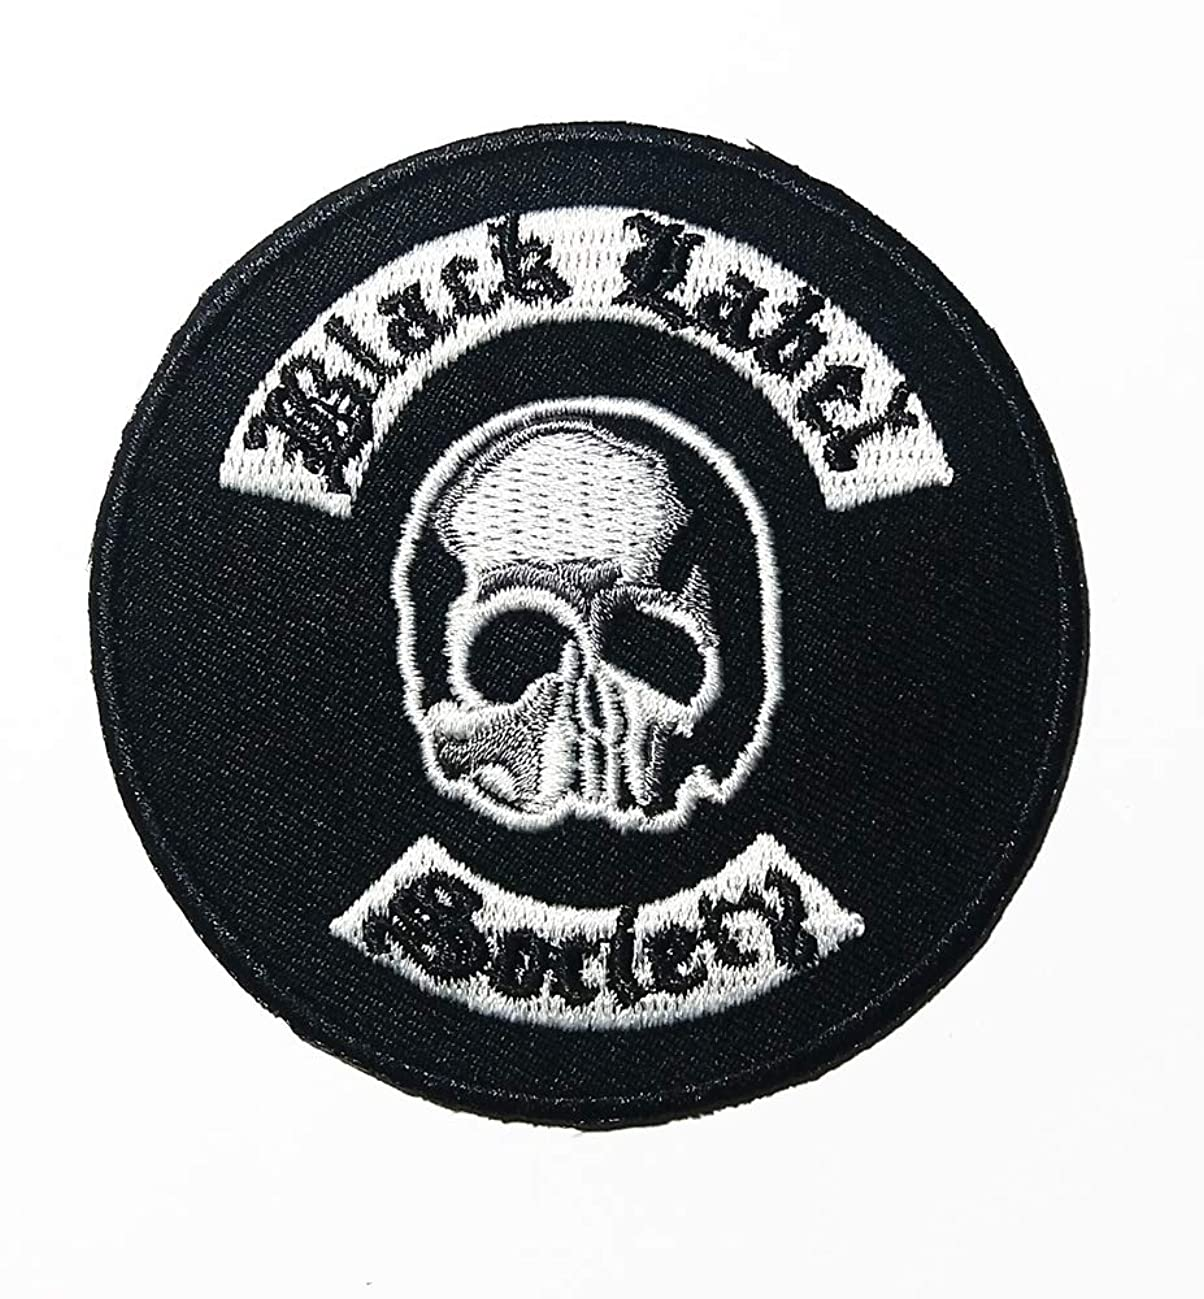 Music B Heavy Metal Hard Rock Band Music Style Logo Patch Embroidered Sew Iron On Patches Badge Bags Hat Jeans Shoes T-Shirt Applique